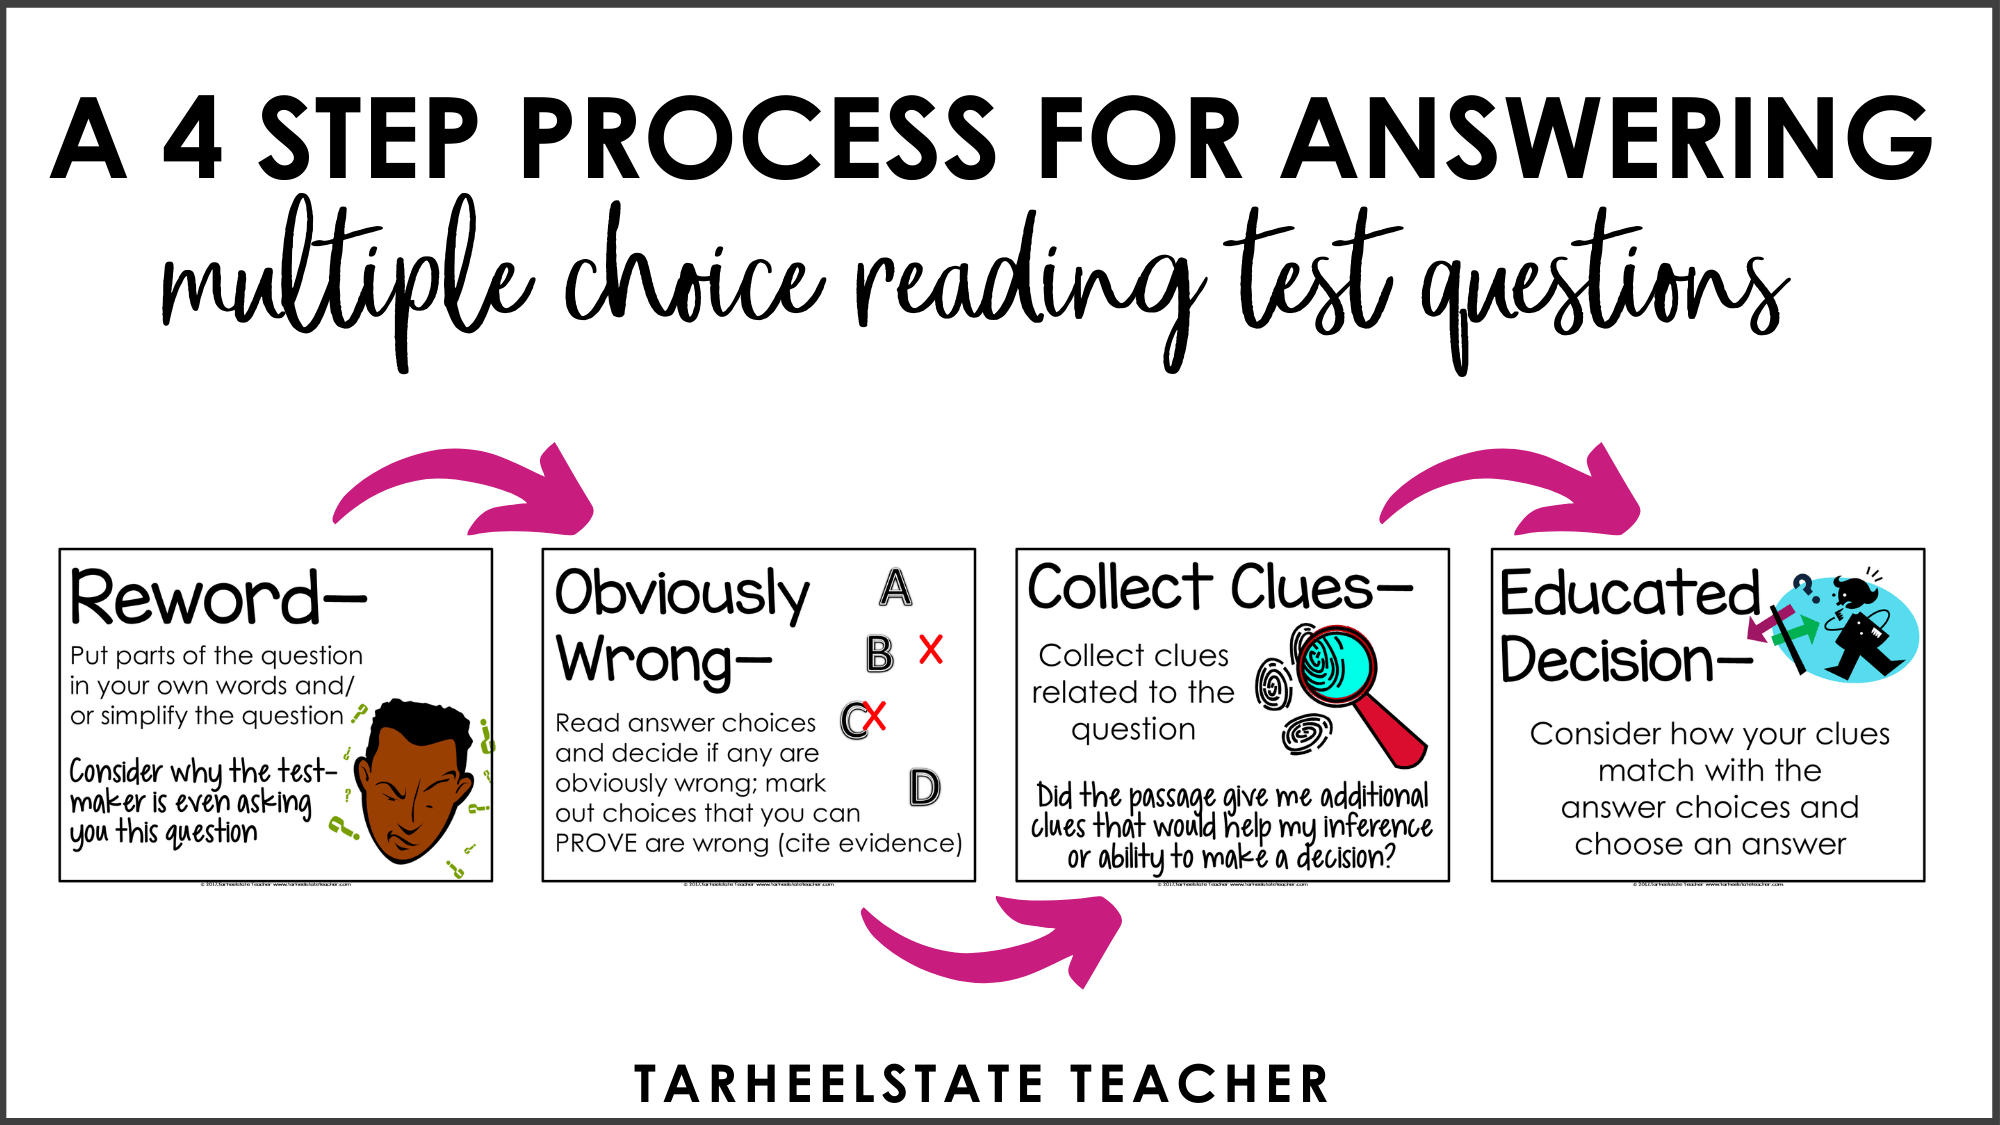 hight resolution of A 4 Step Process for Answering Multiple Choice Reading Questions —  Tarheelstate Teacher